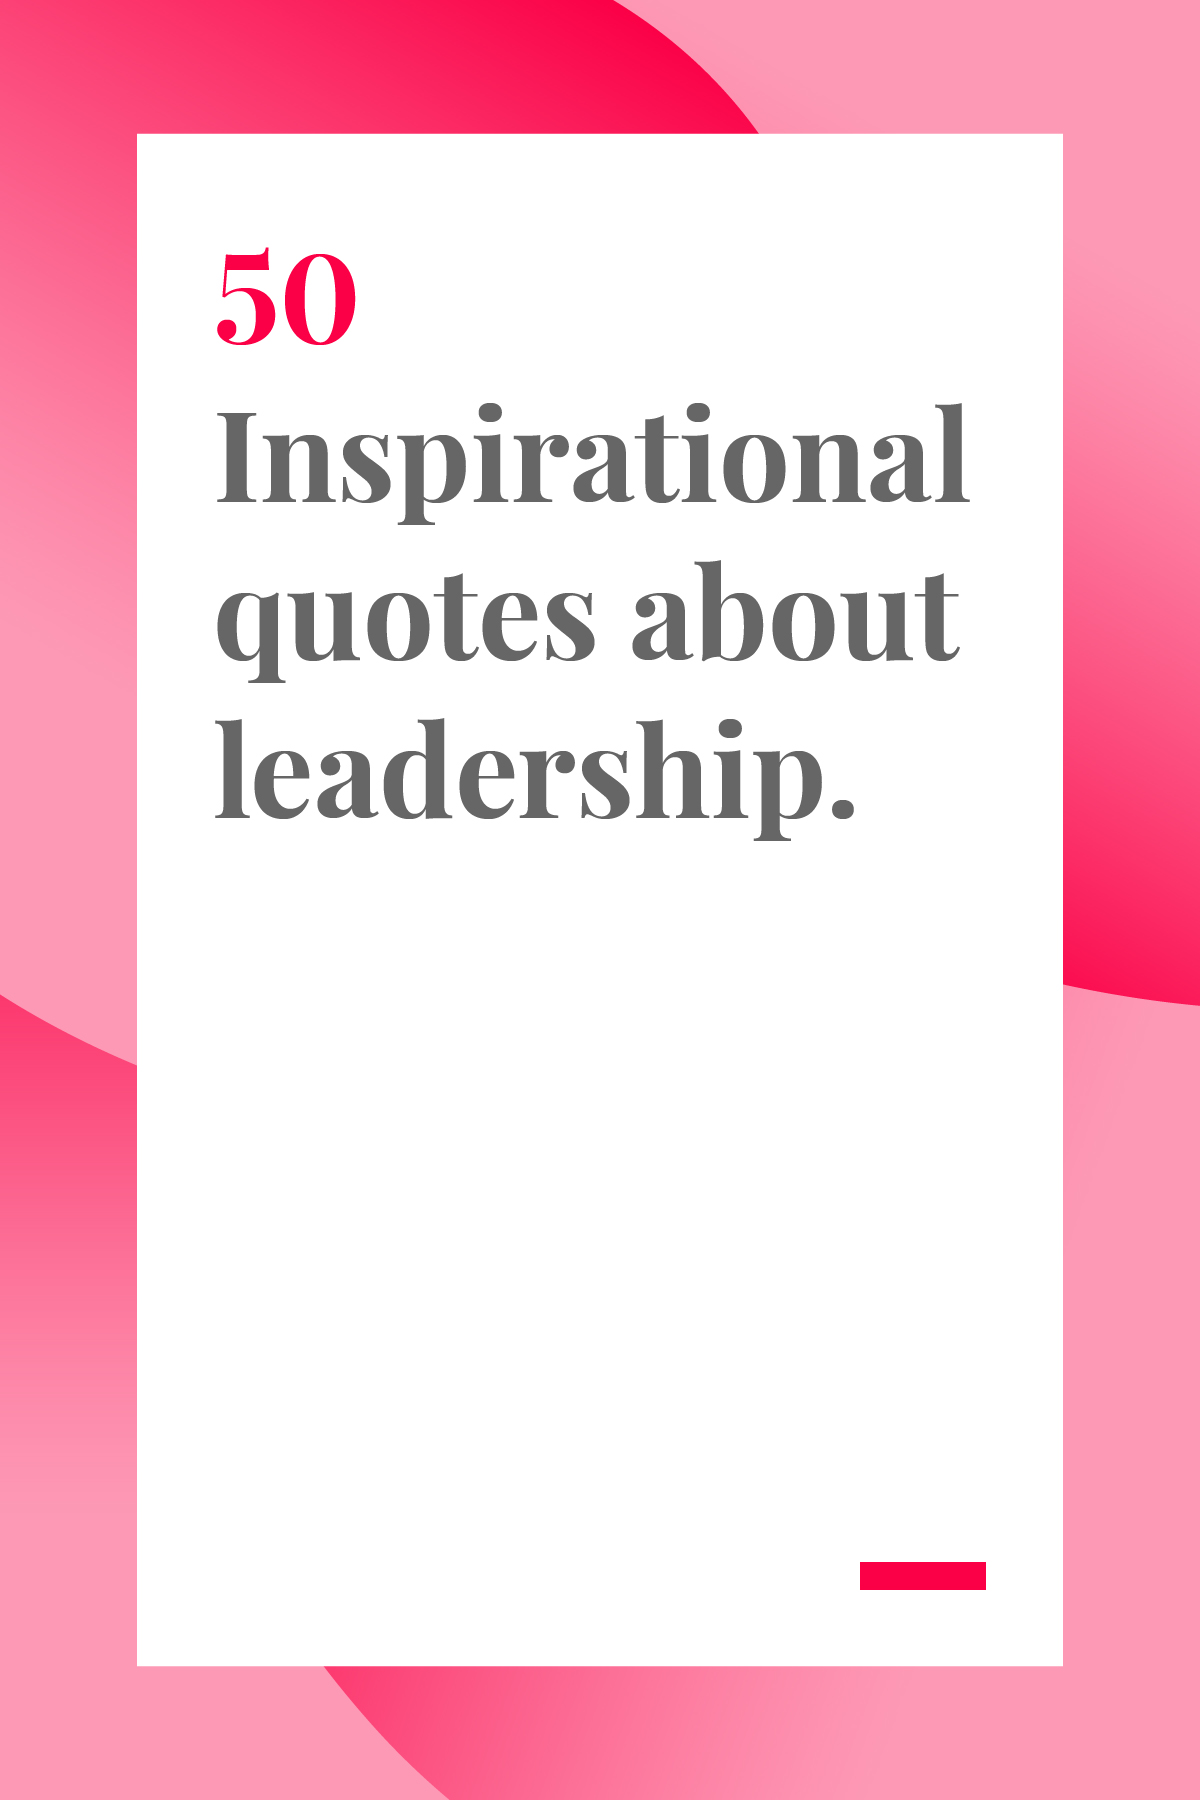 Need some inspiration to bring out the best in yourself and your team? These quotes about leadership will give you just the boost you're looking for.